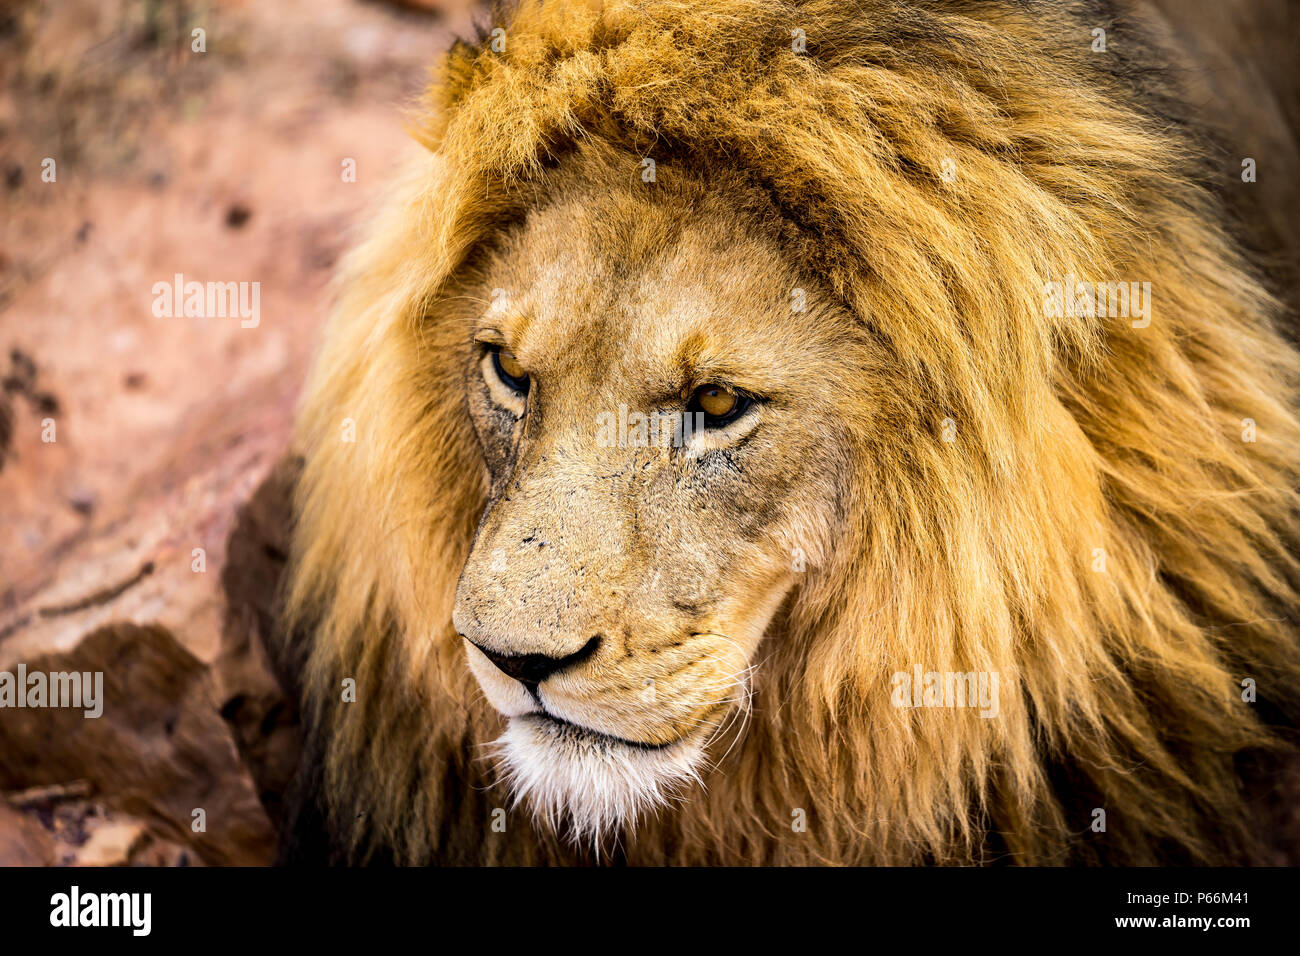 A lions face closeup, his eyes focussing on something outside the pucture - Stock Image